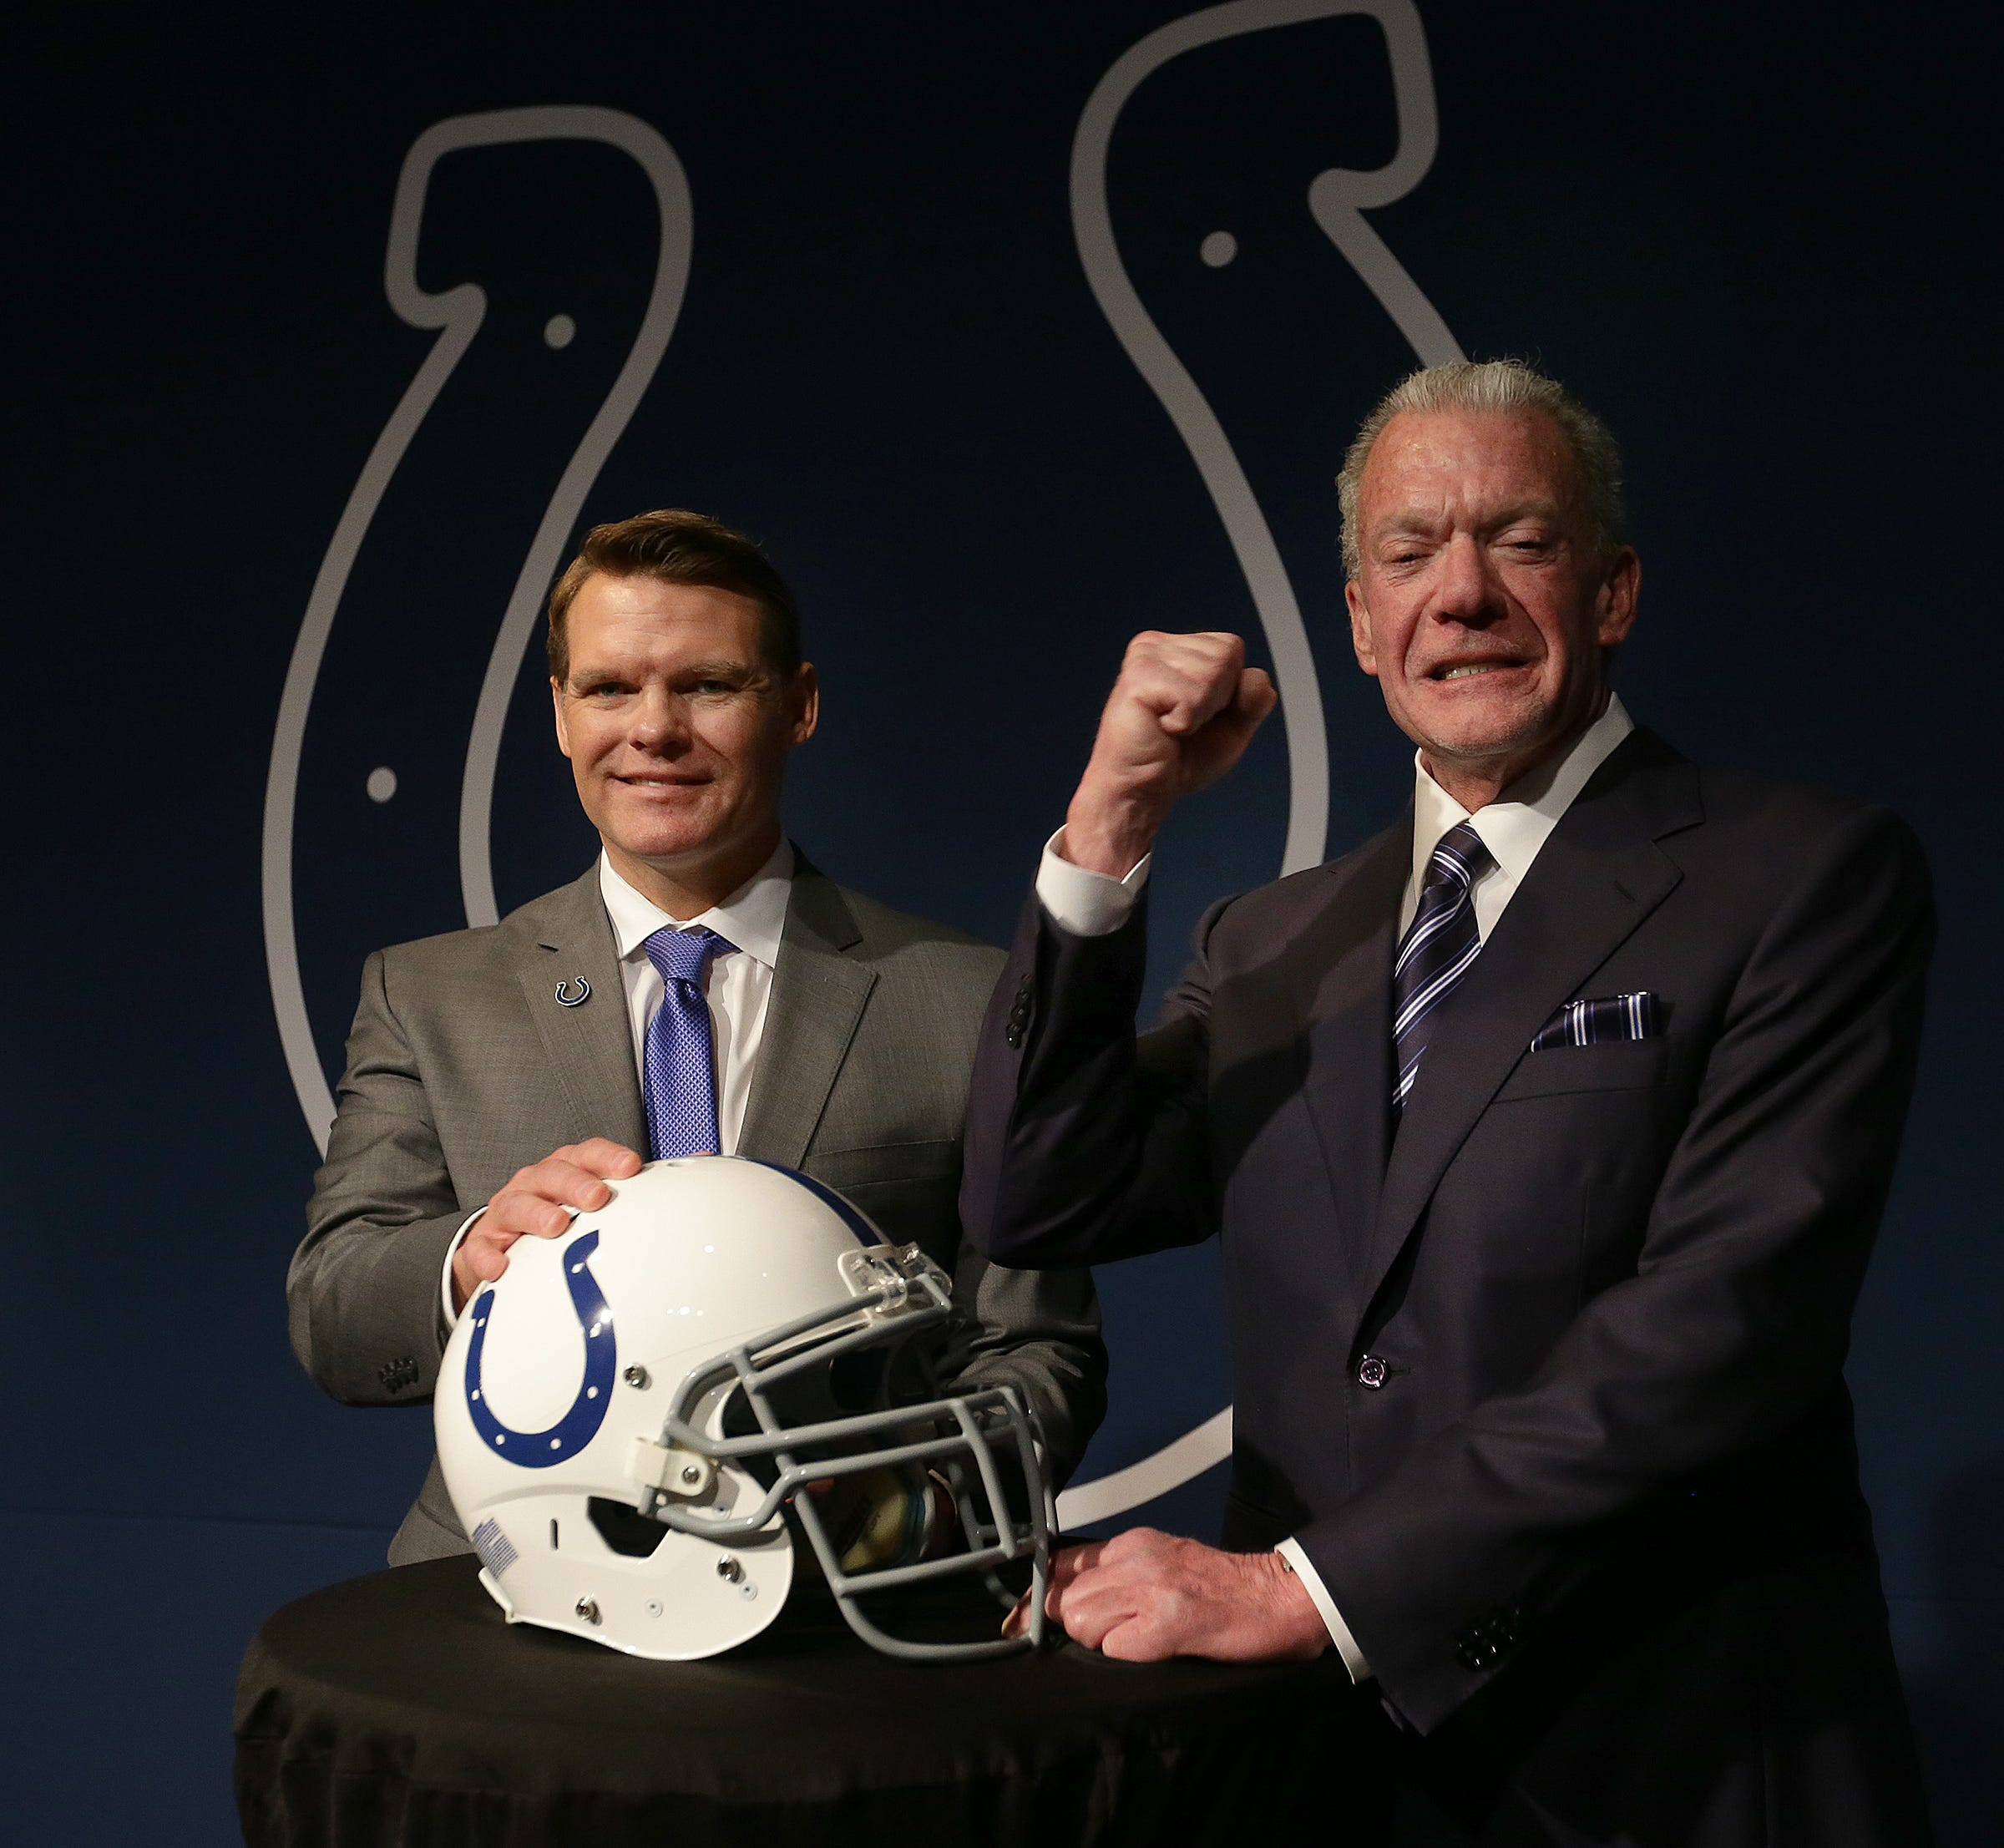 Colts give up the goods on draft plans